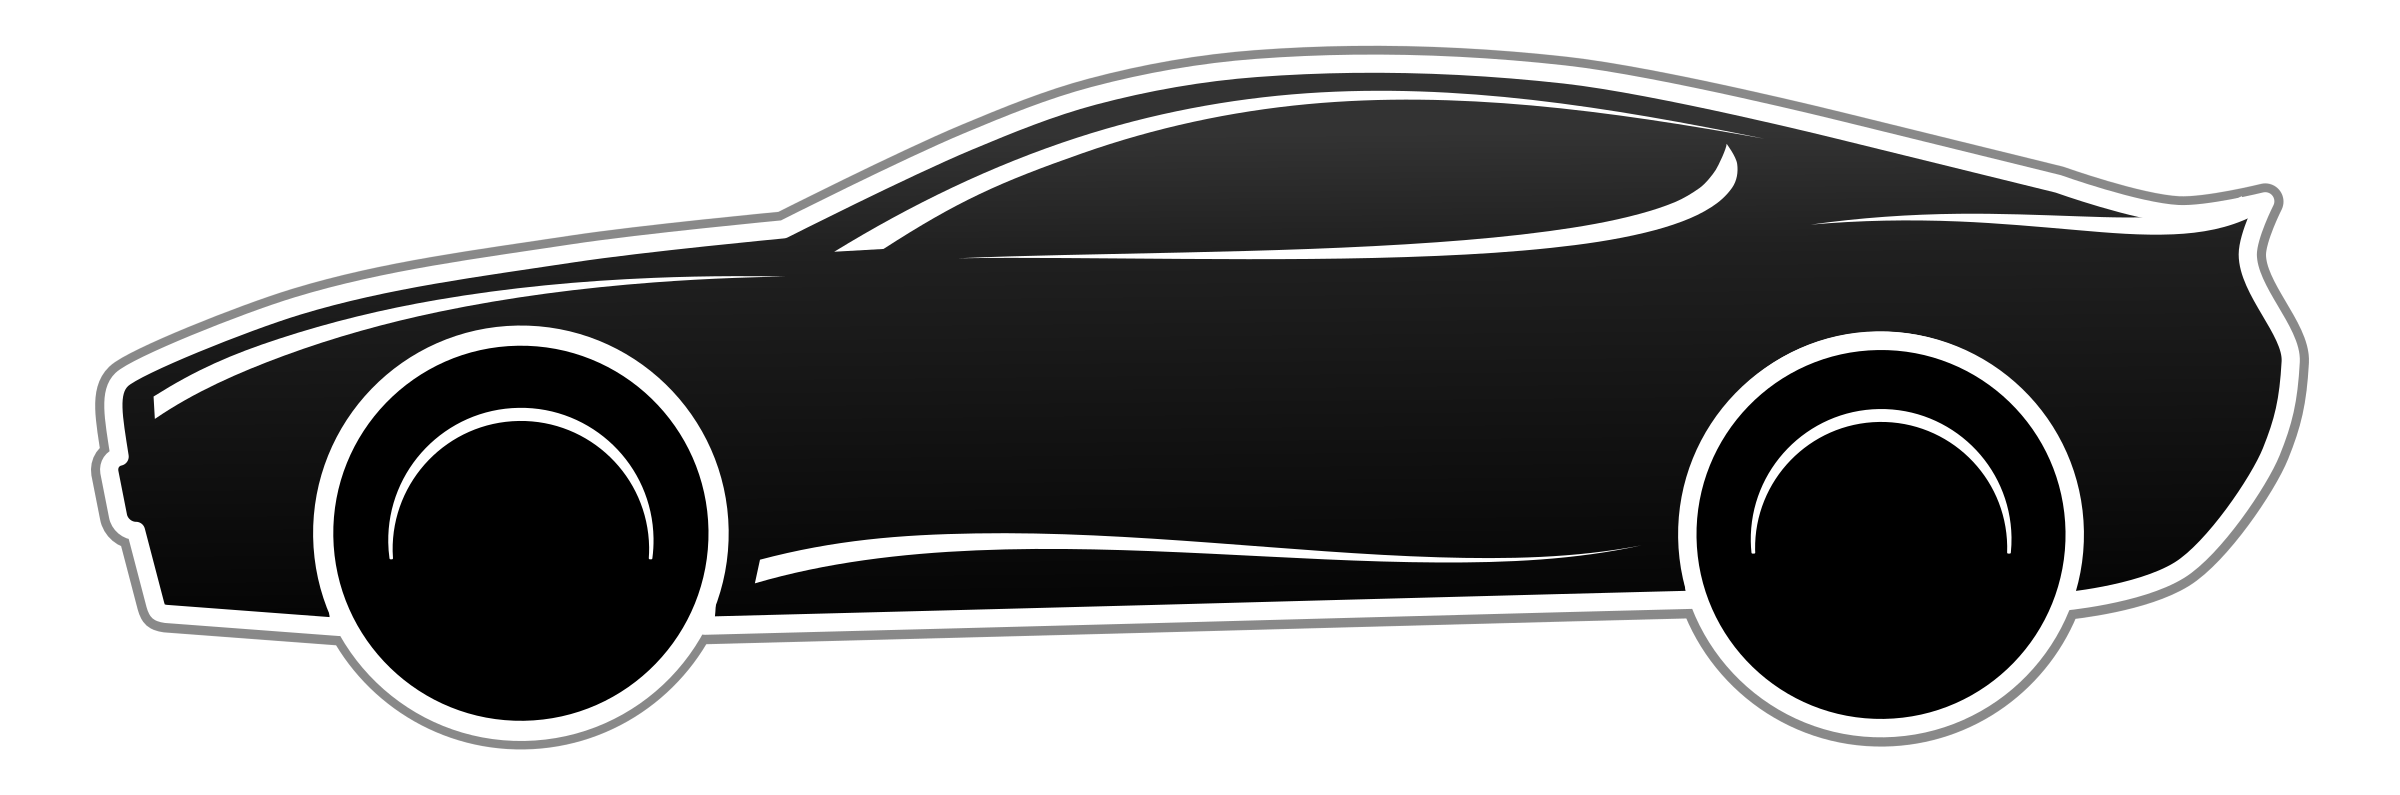 Clipart Car Black And White Clipart Car Black And White Transparent Free For Download On Webstockreview 2021